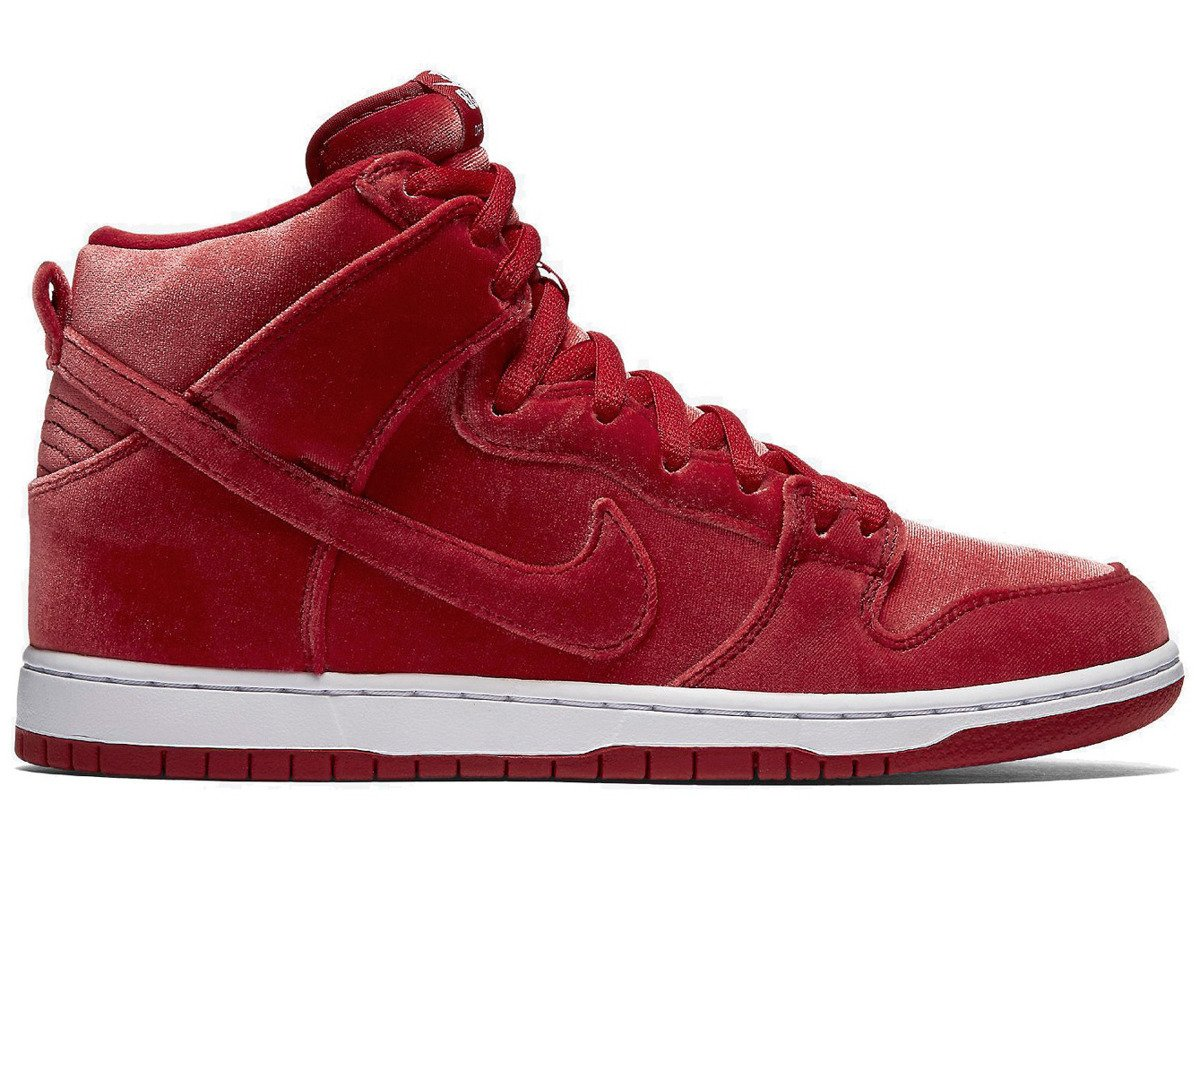 the latest 52dbe 7d6b4 buty nike dunk high premium sb gym redgym red-white  Shoes  Nike SB SALE   Sale 50% -70%  Shoes Brands  Nike SB Buty  Nike SB  Nike Zima 2016 ...